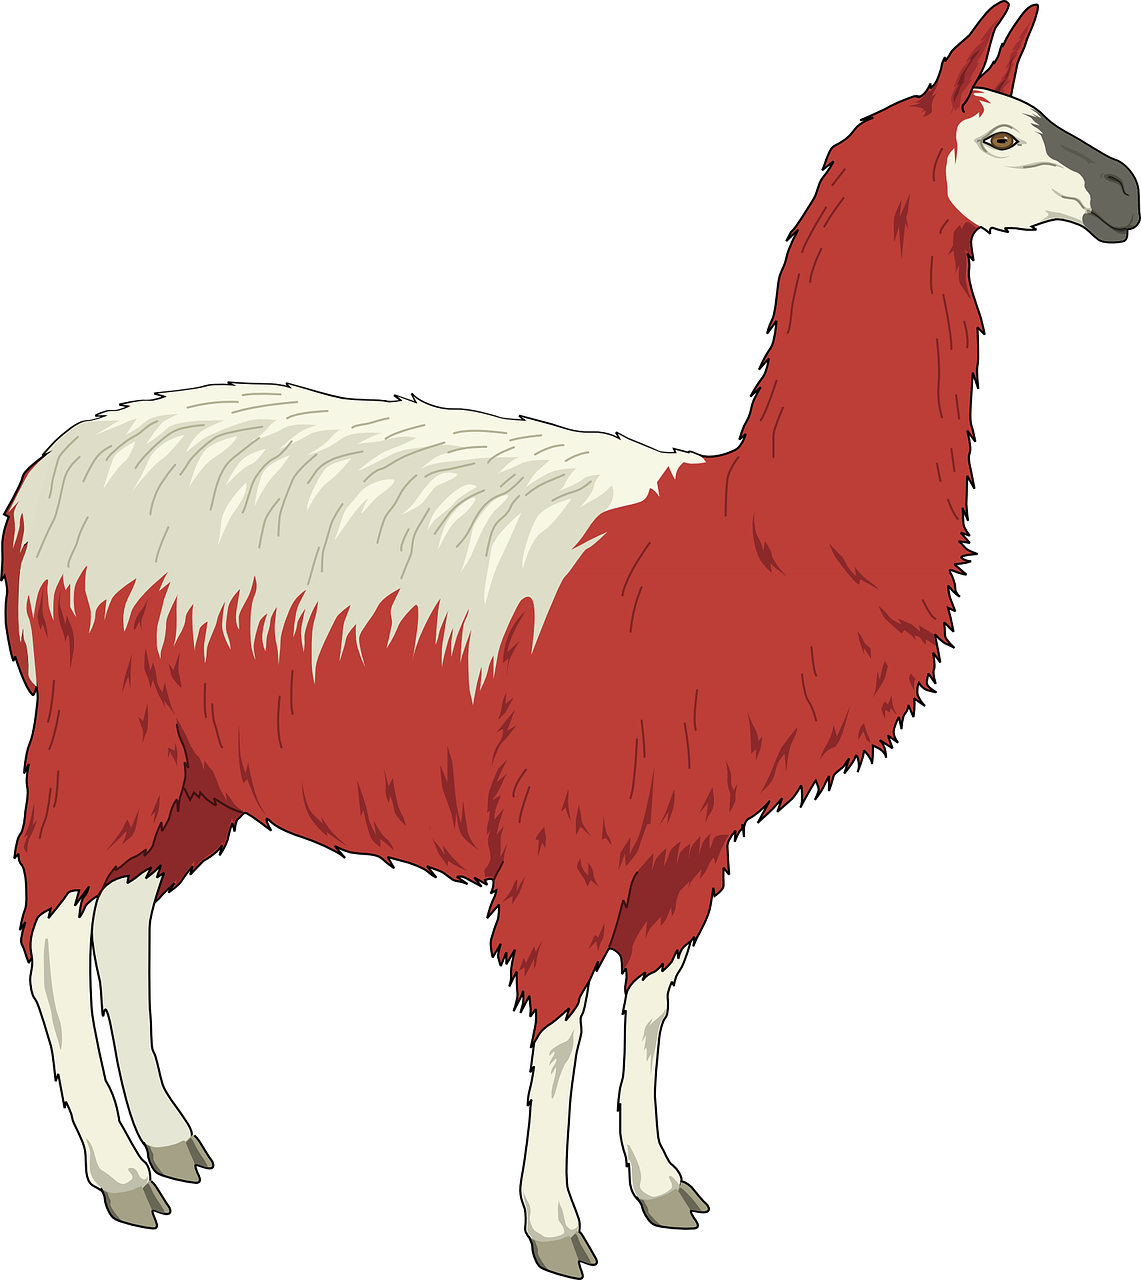 llama shaggy red free photo